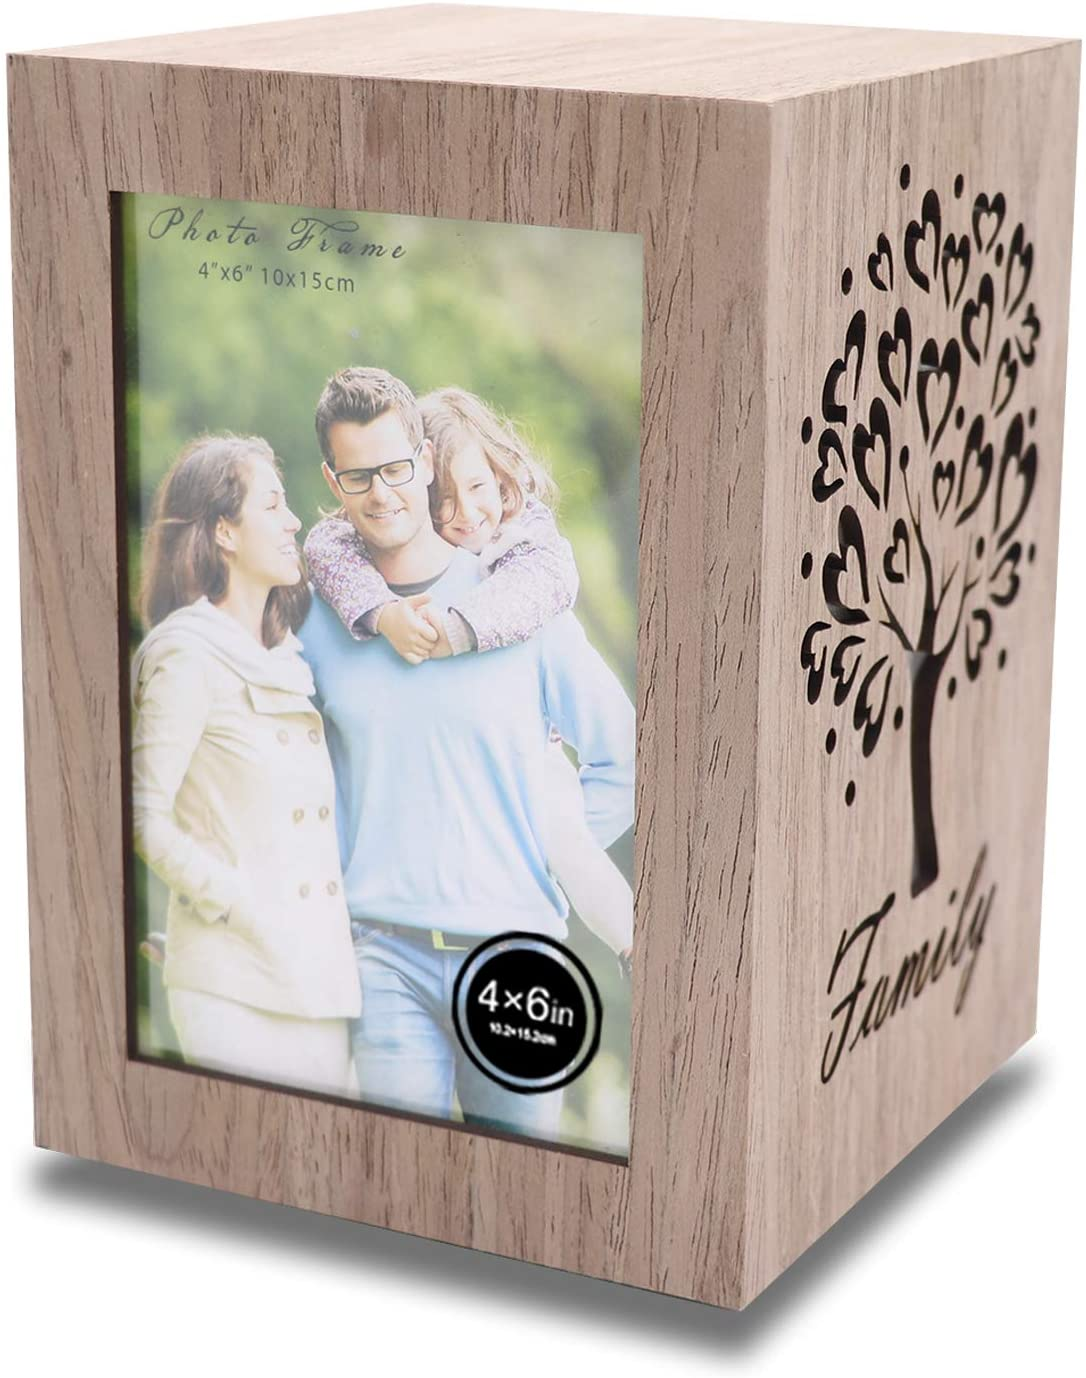 going-away-gifts-her-family-frame